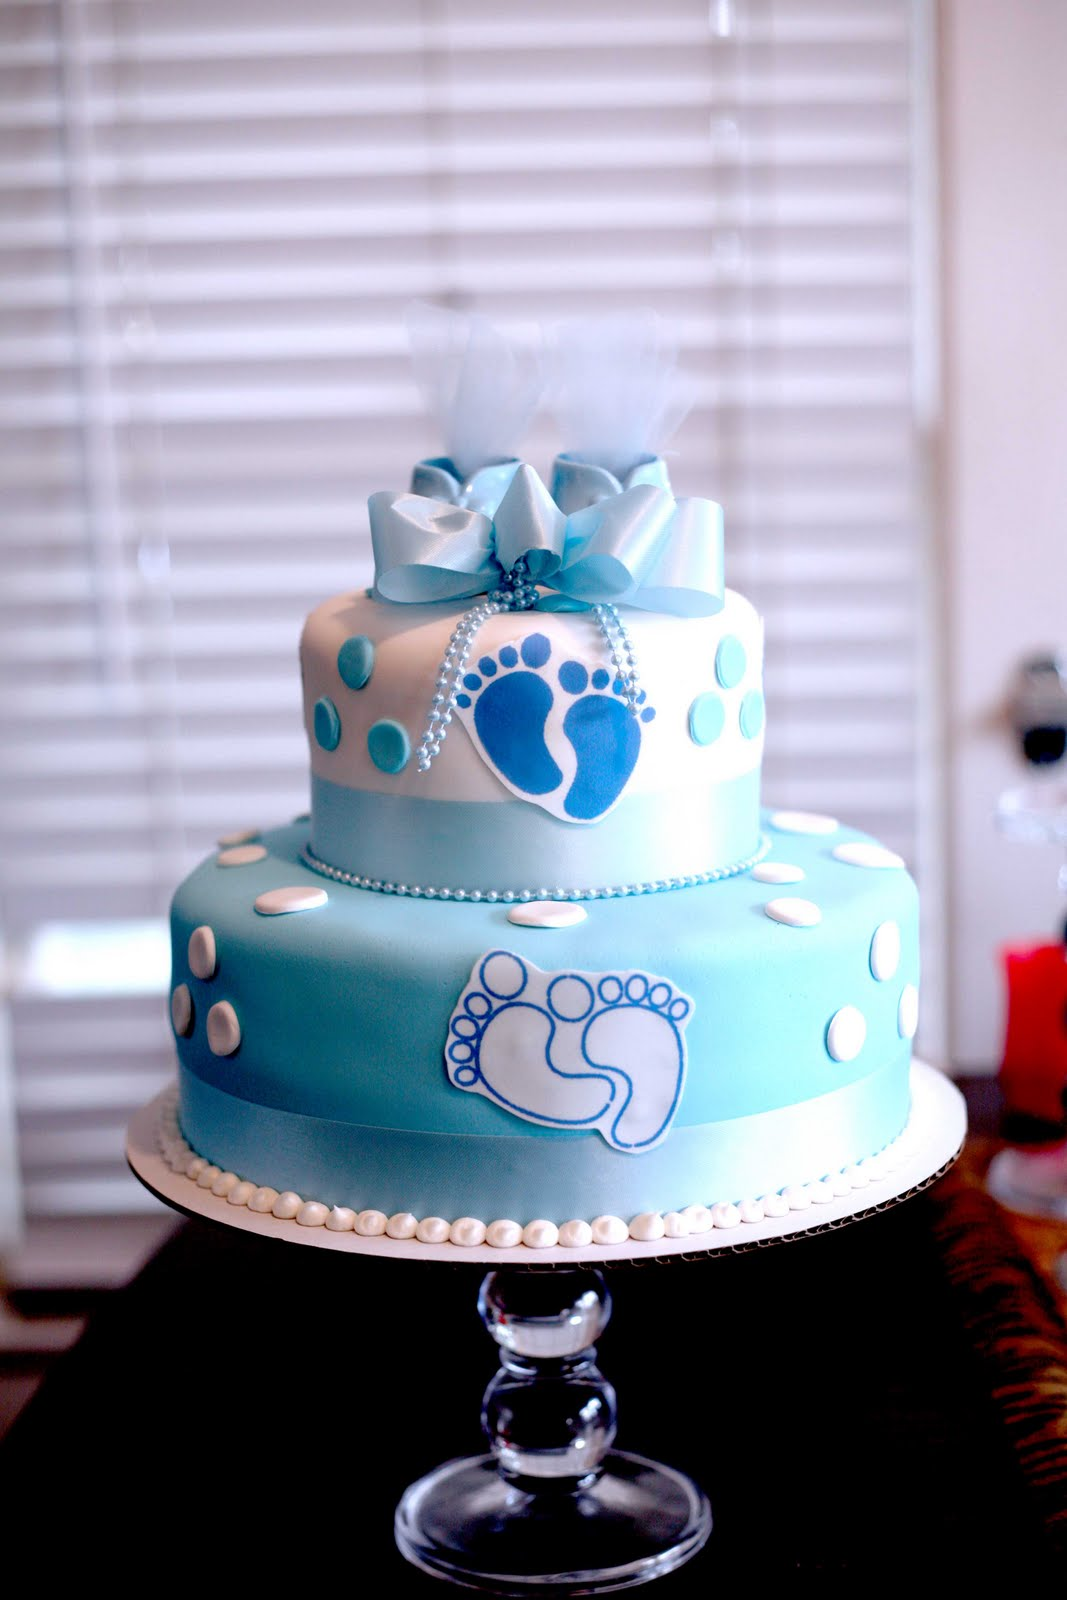 Boy Baby Shower Cake 2 Tiered/ Stacked/ Layered/